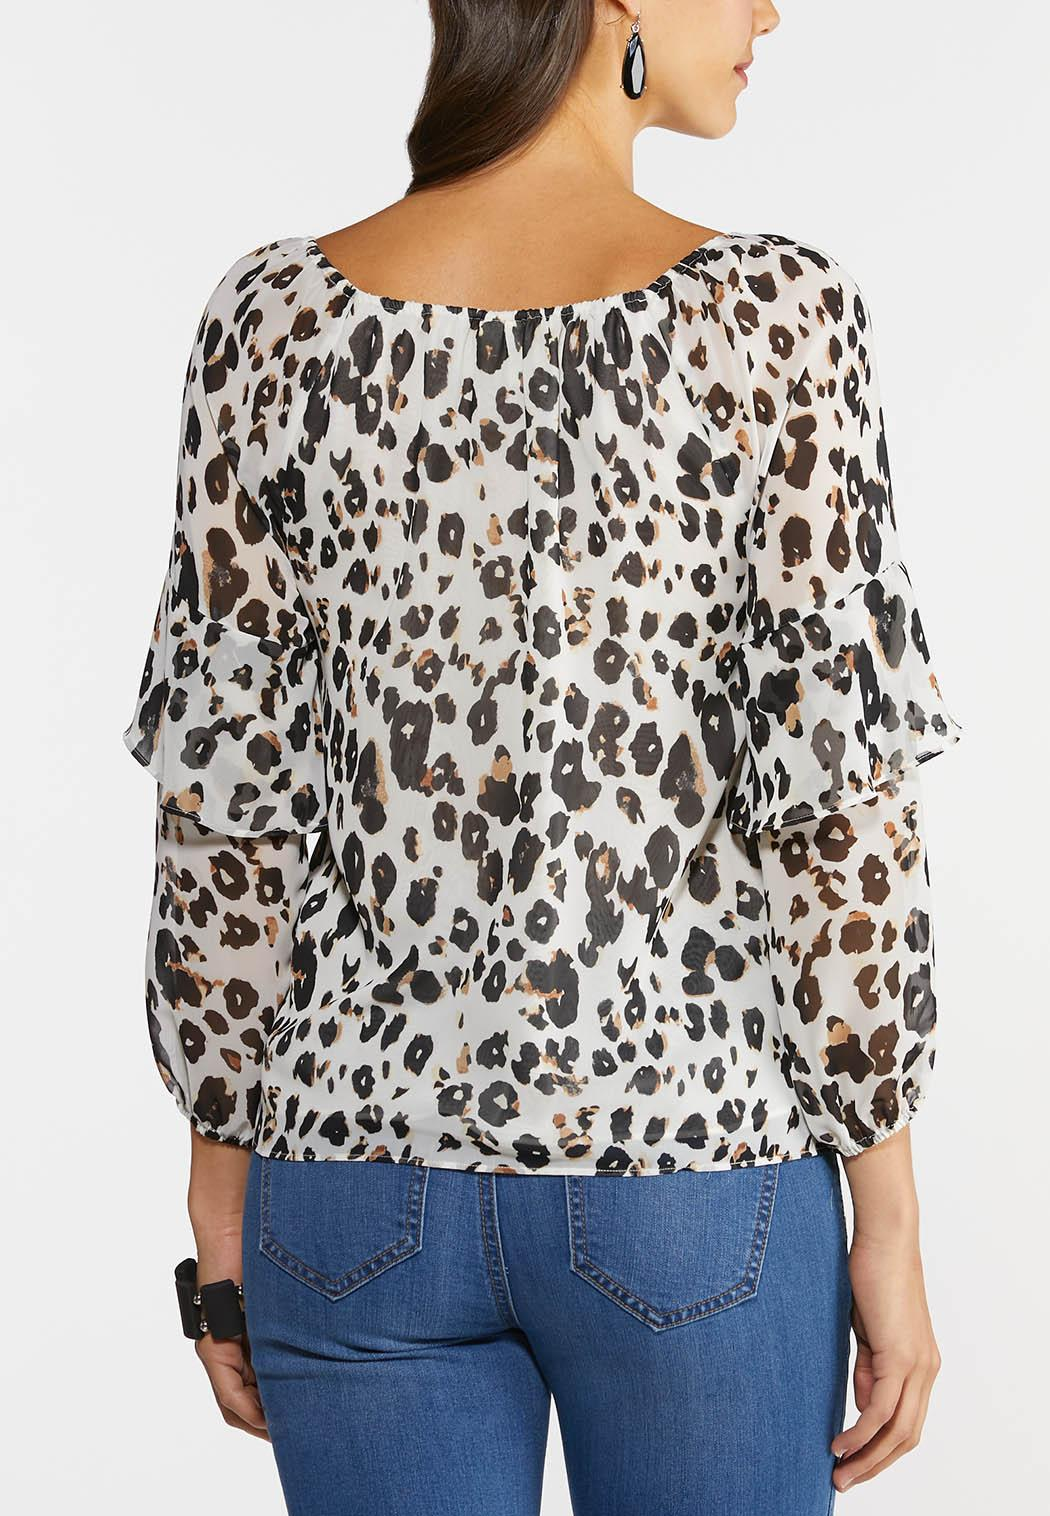 Plus Size Ruffled Leopard Top (Item #44279434)